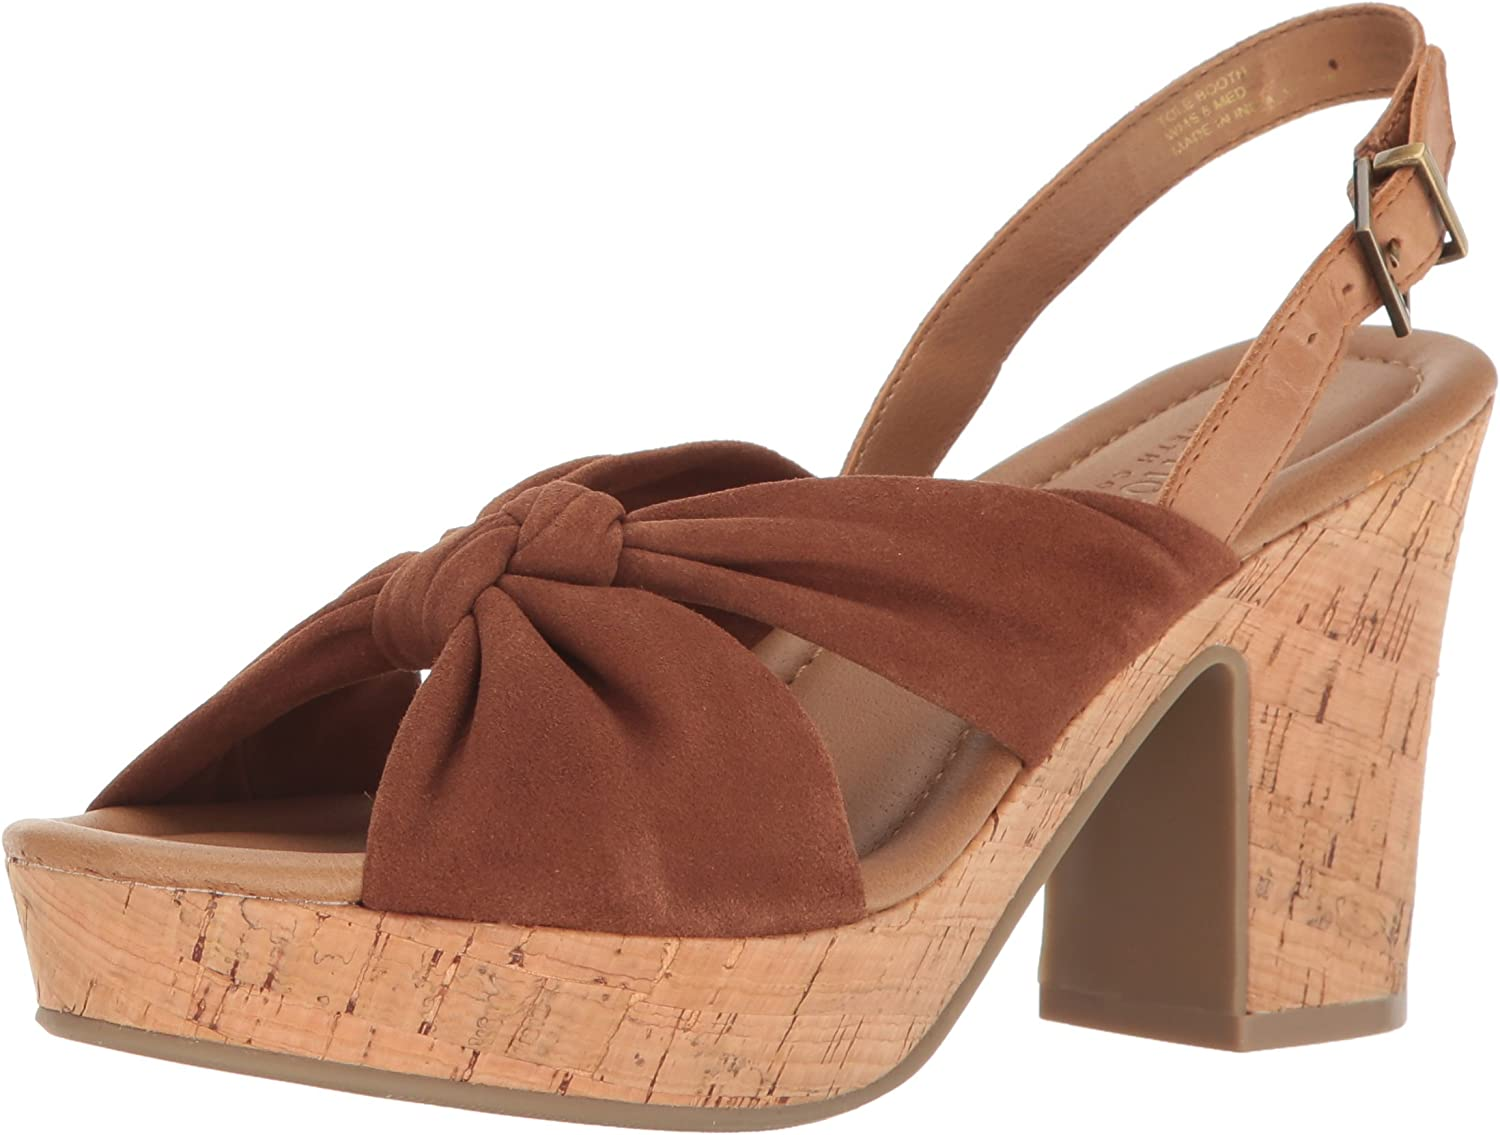 Kenneth Cole REACTION Women's Tole Booth Heeled Sandal